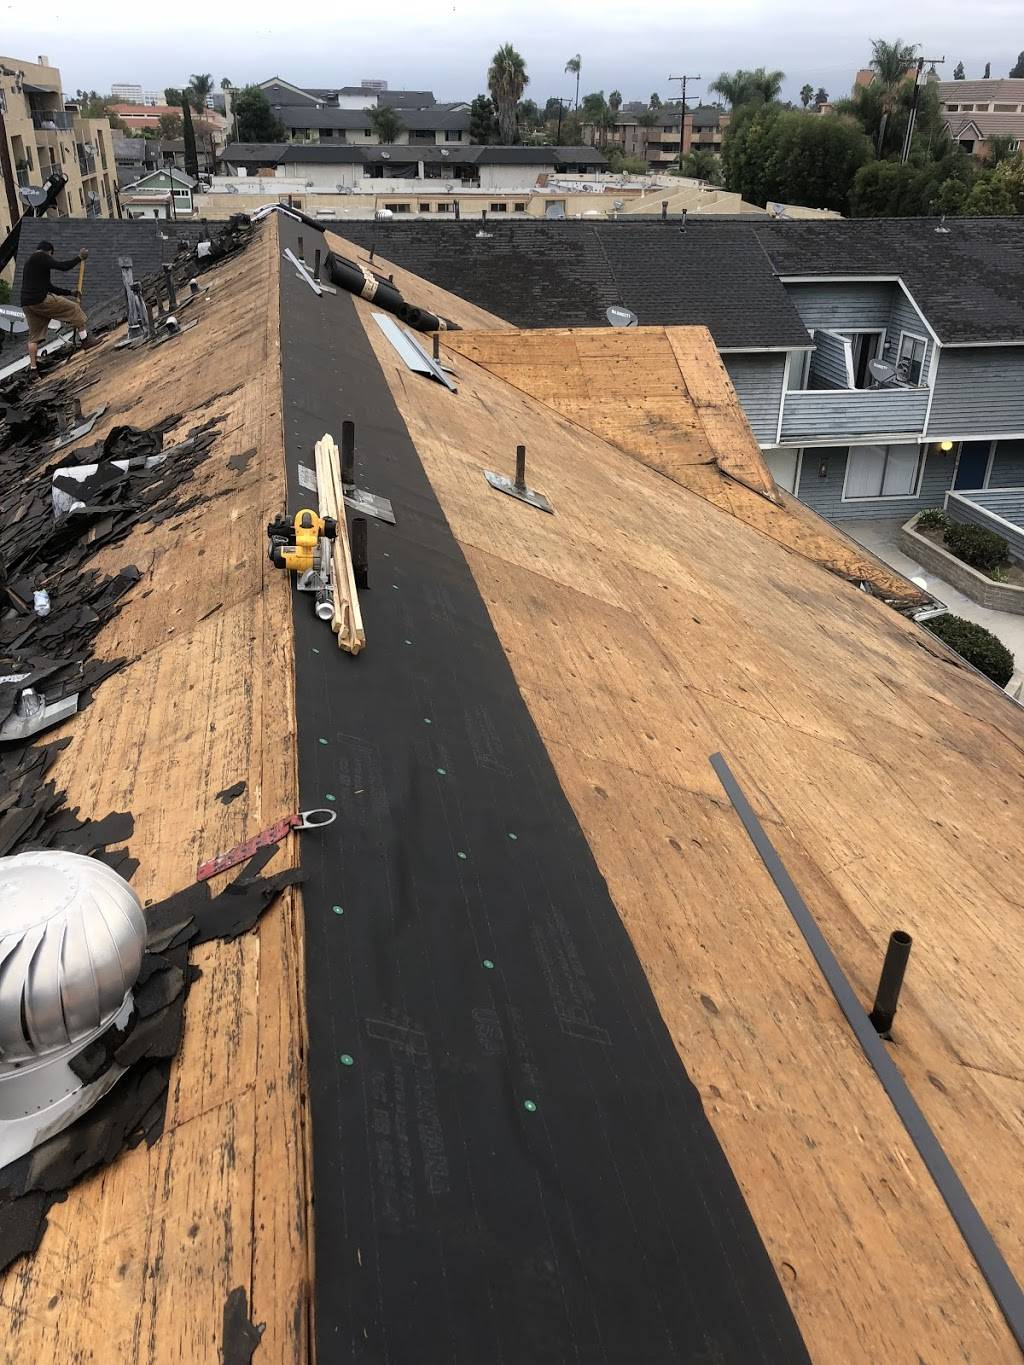 Ayon's Roofing - roofing contractor  | Photo 3 of 8 | Address: 1713 E Sycamore St, Anaheim, CA 92805, USA | Phone: (714) 944-3340